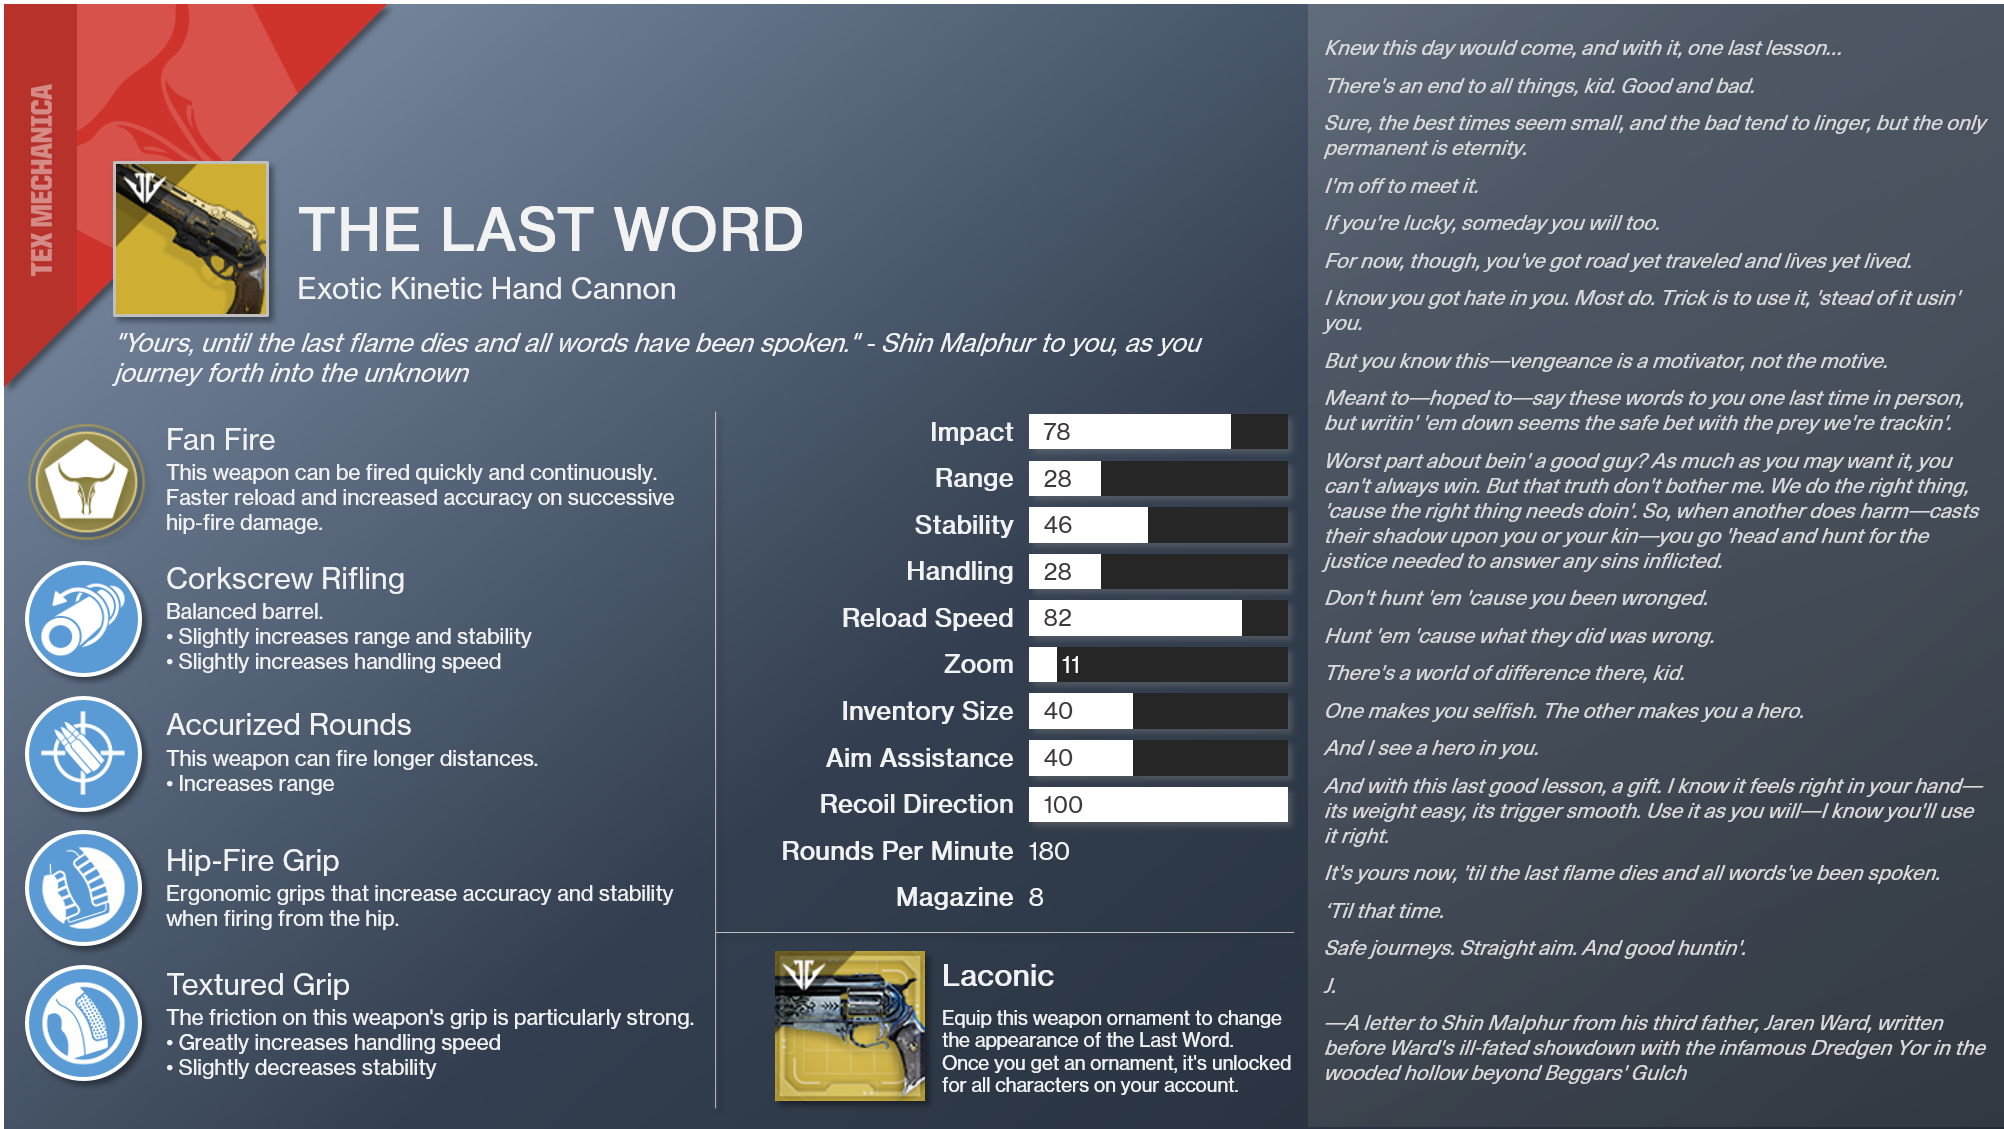 How Good Is The Last Word (Destiny 2 Version)?